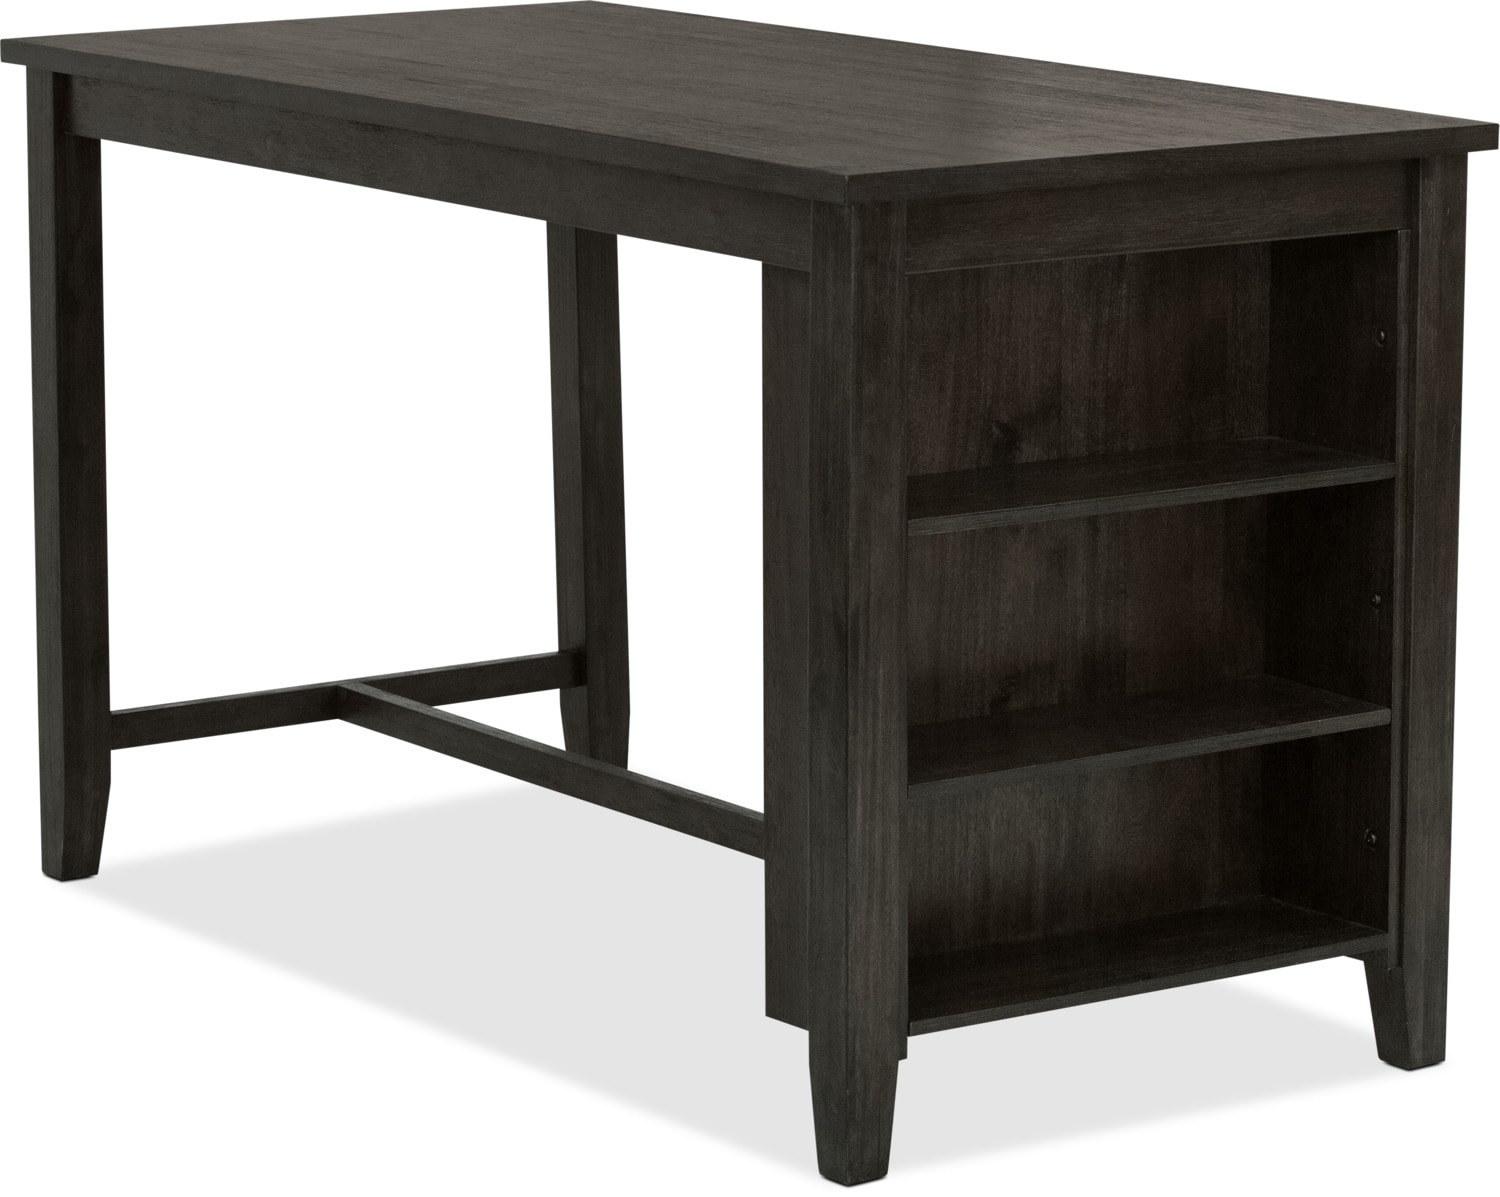 Astoria Counter-Height Dining Table